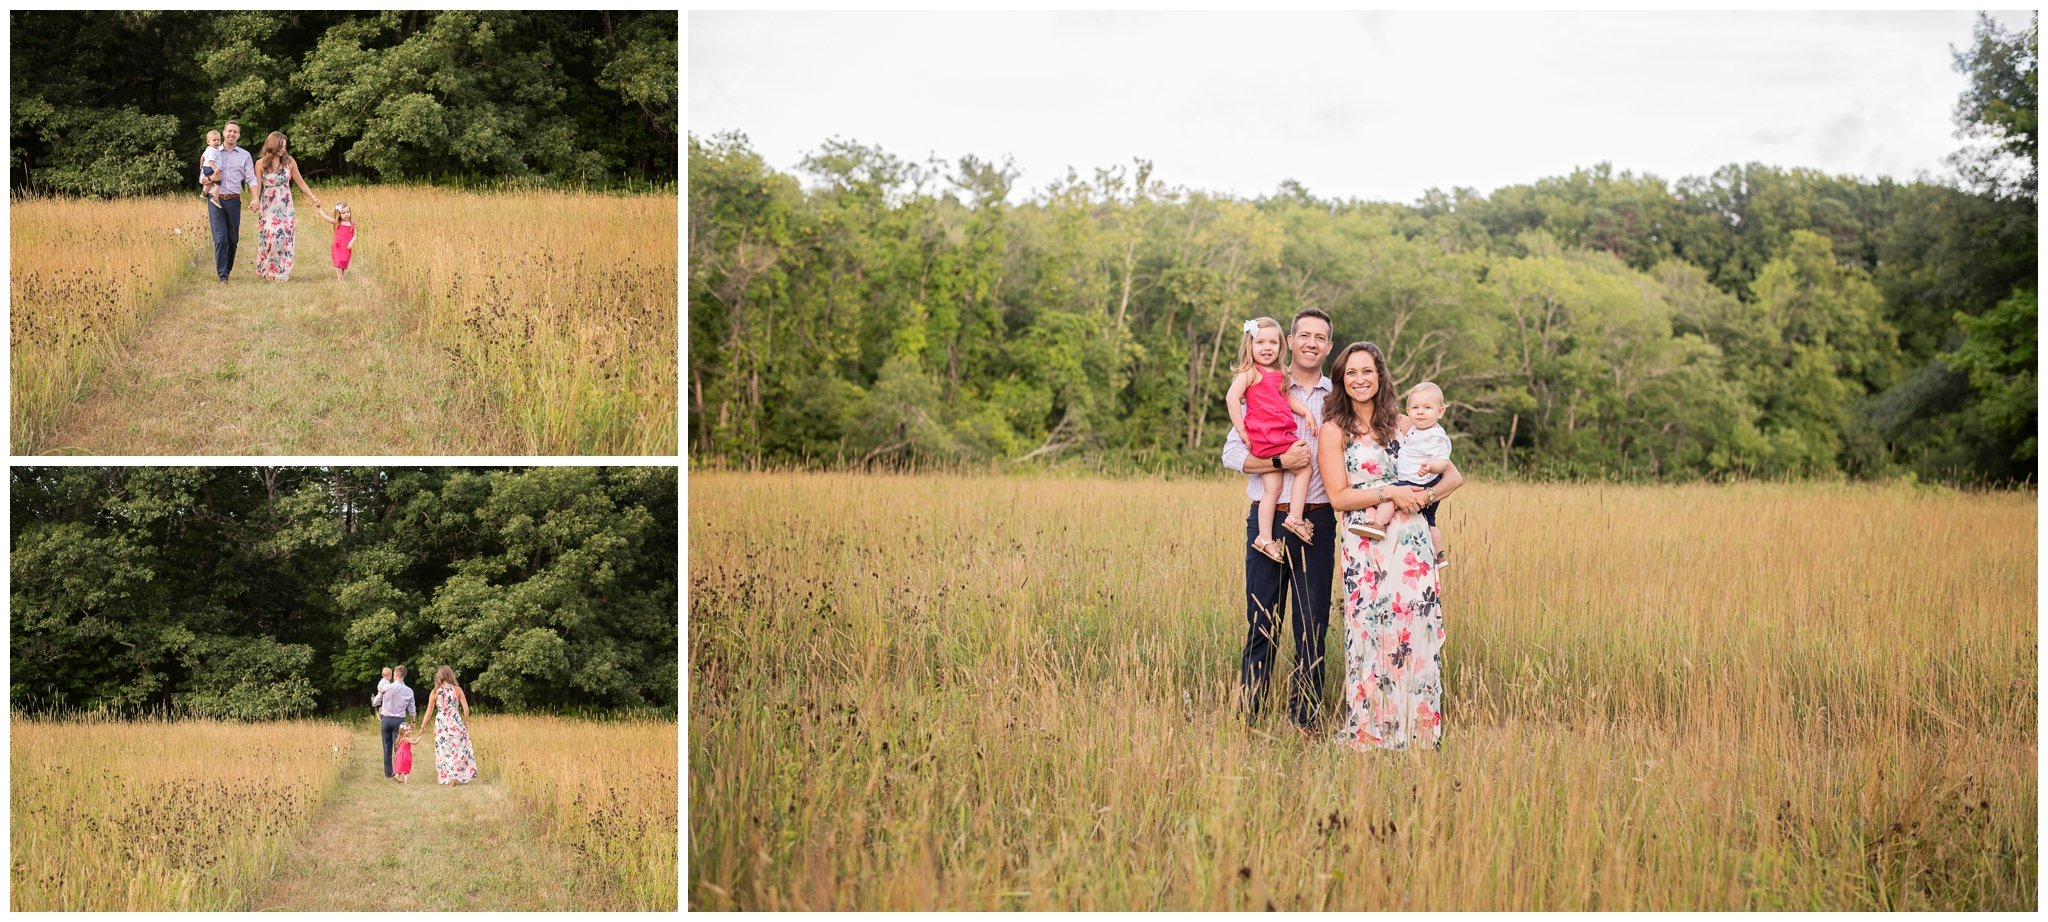 Family photographer Jennie Bishop of White Wave Photography shares tips for a great family photoshoot